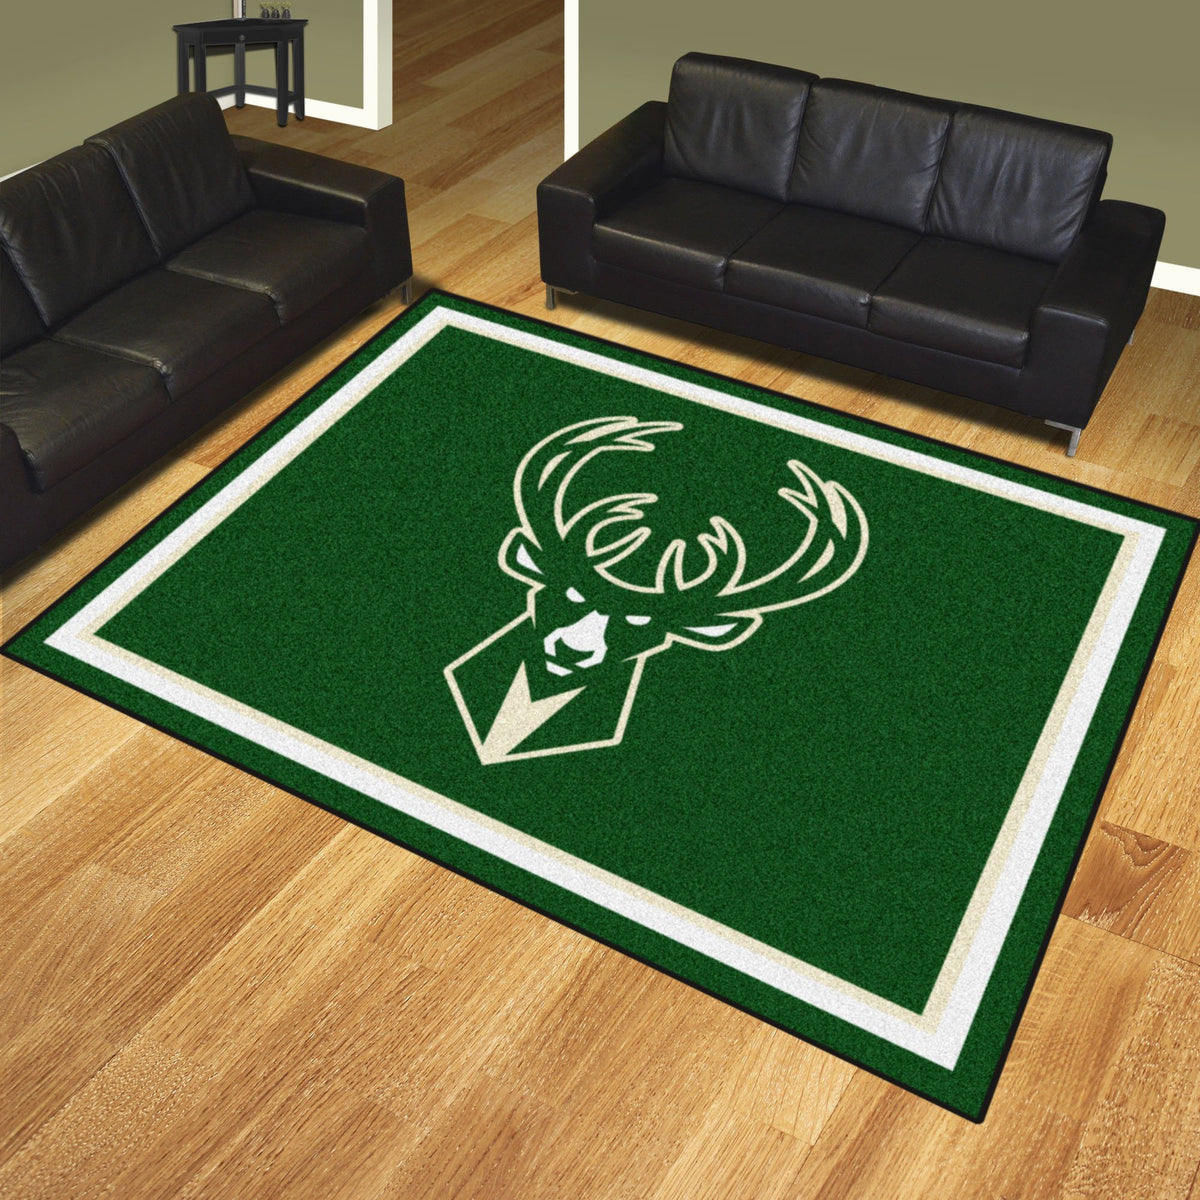 NBA - 8' x 10' Rug NBA Mats, Plush Rugs, 8x10 Rug, NBA, Home Fan Mats Milwaukee Bucks